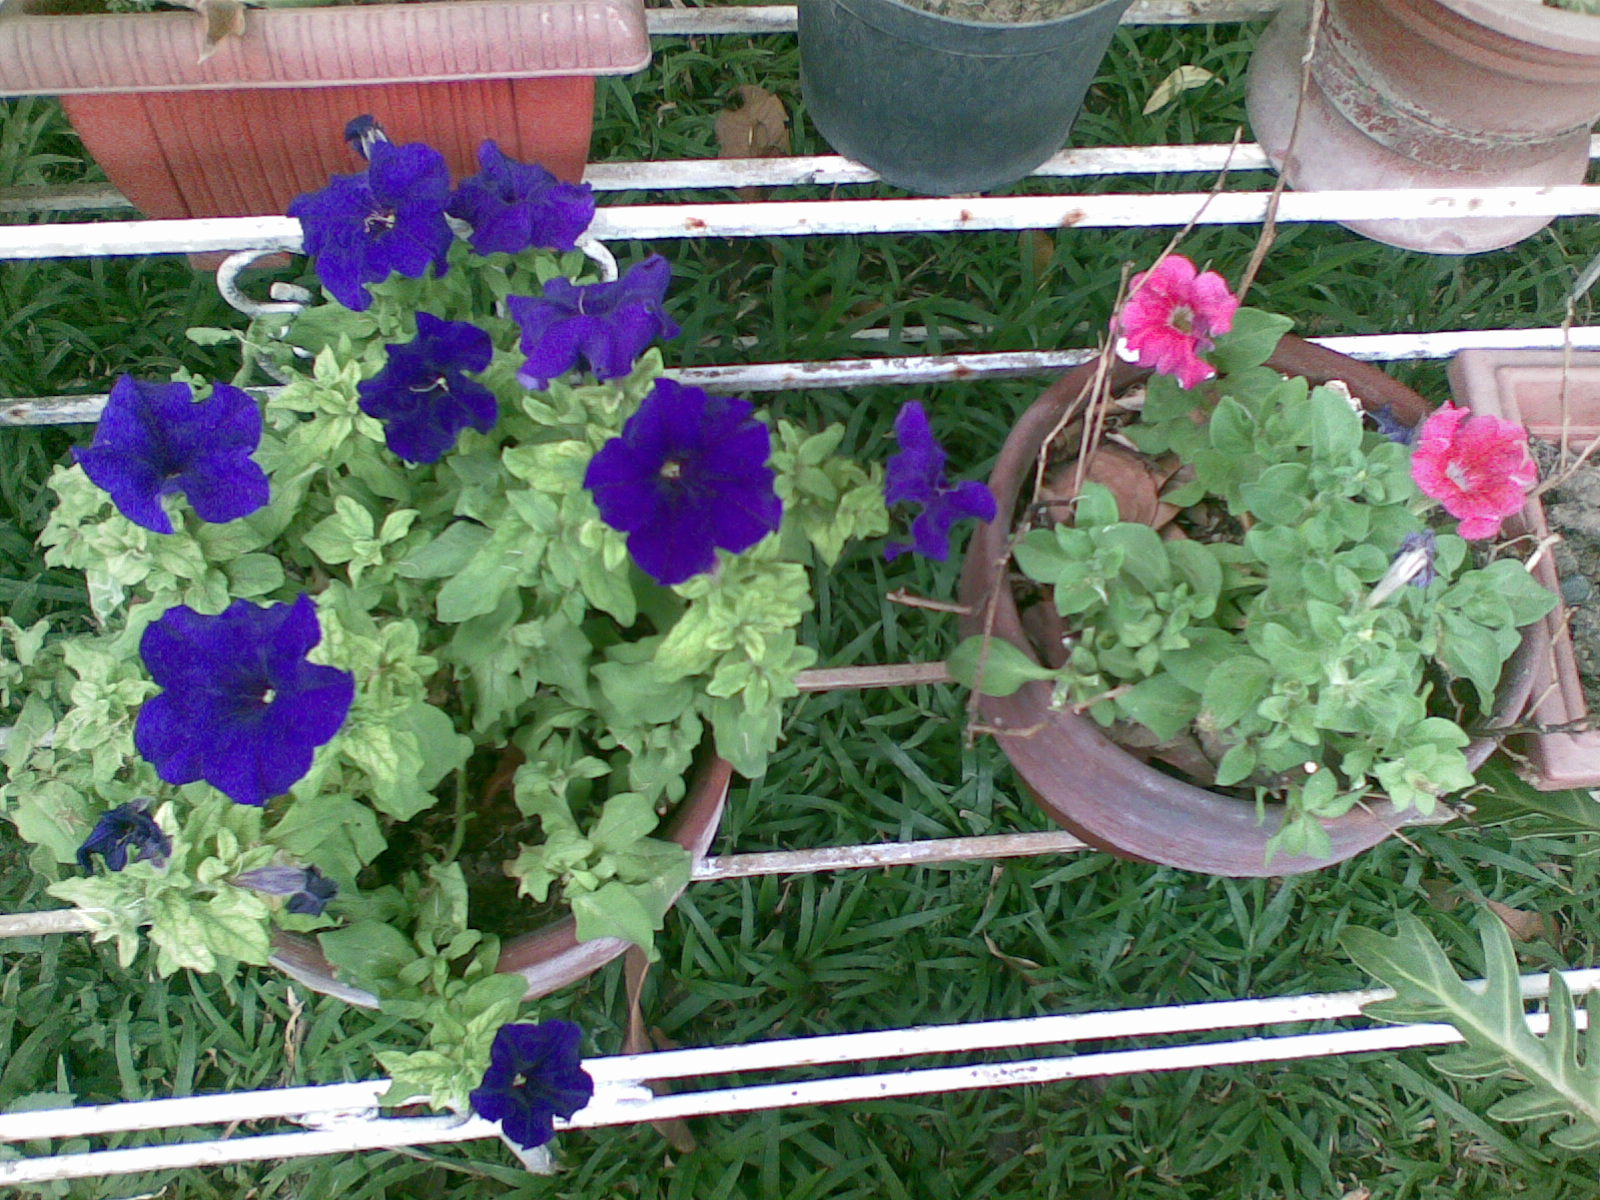 They Bloom And Grow On Their Own Without Too Much Effort For Me I Water Heavily Leave Them In Medium Sun Spray My Soap Solution Use